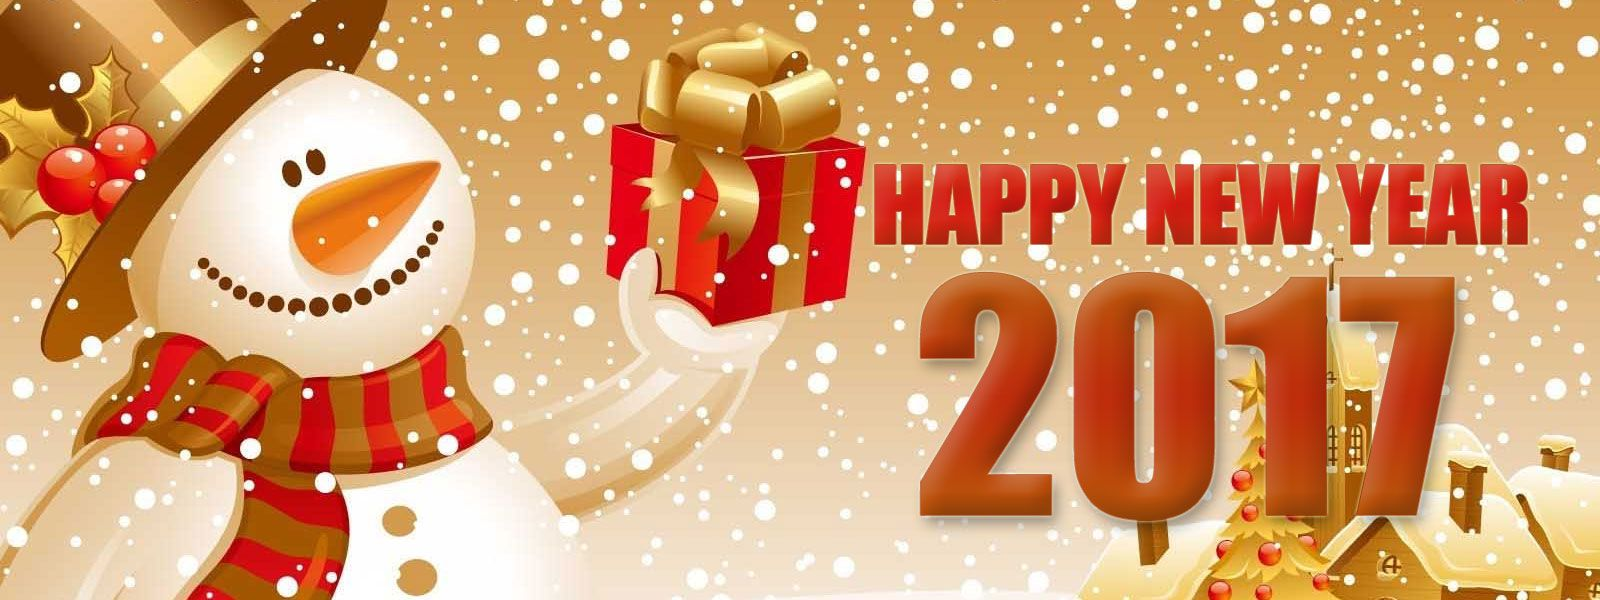 Wallpaper download of 2017 - Happy New Year Name Wallpaper Archives Happy New Year Images 2017